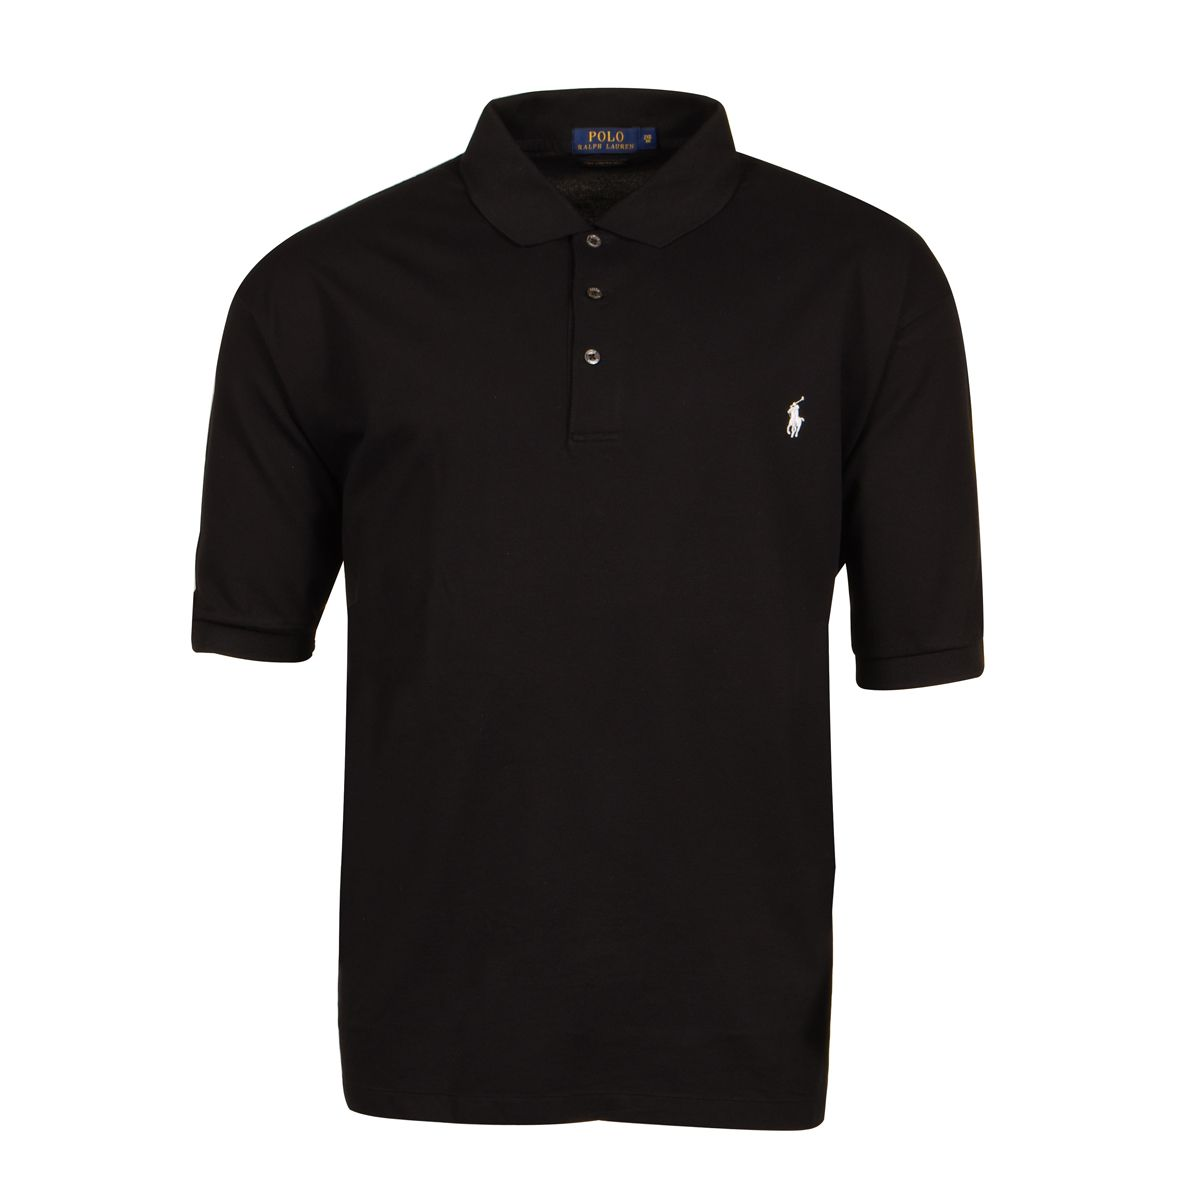 Polo noir grande taille du 2xl au 6xl size factory for 6xl ralph lauren polo shirts